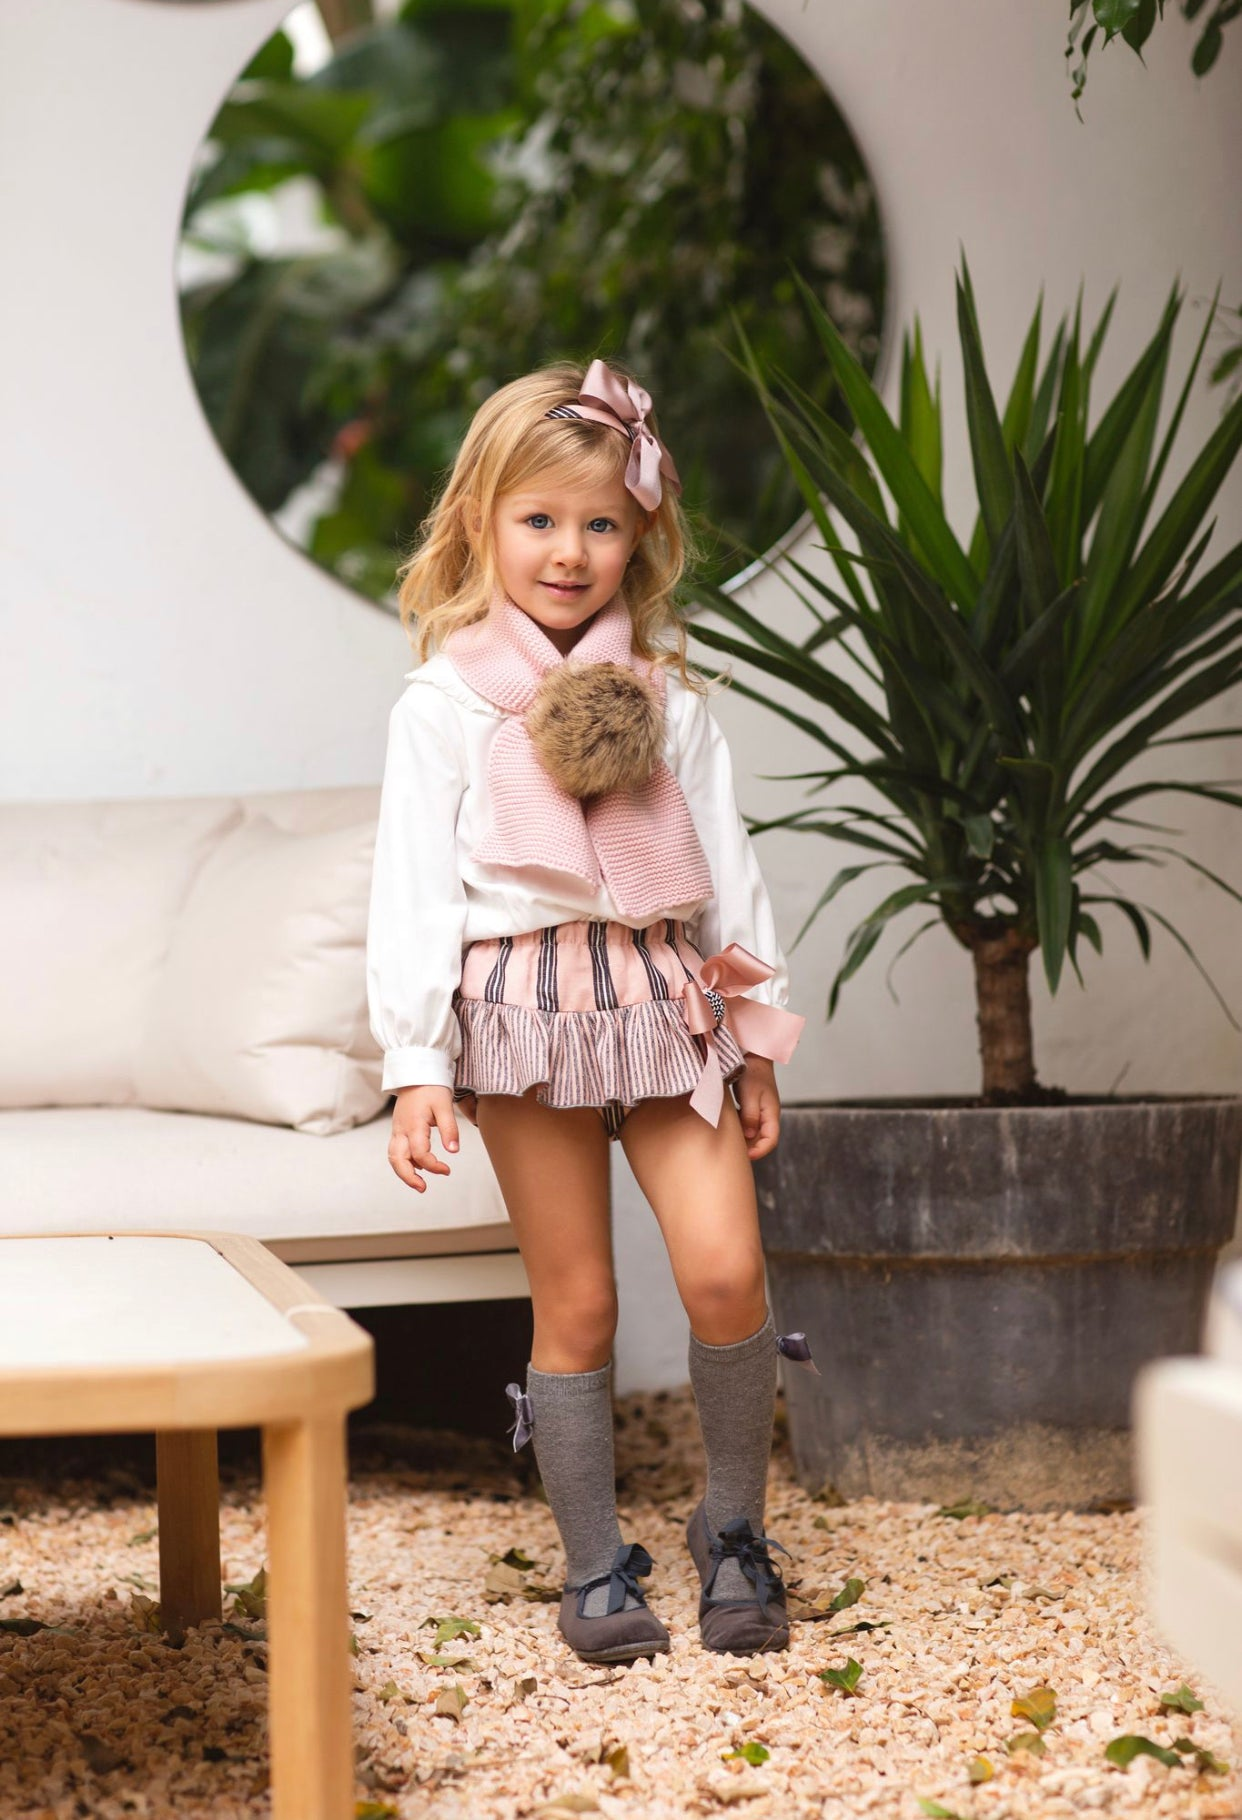 Rochy AW20/21 Beautiful Dusty pink Jam Pant set with bow details